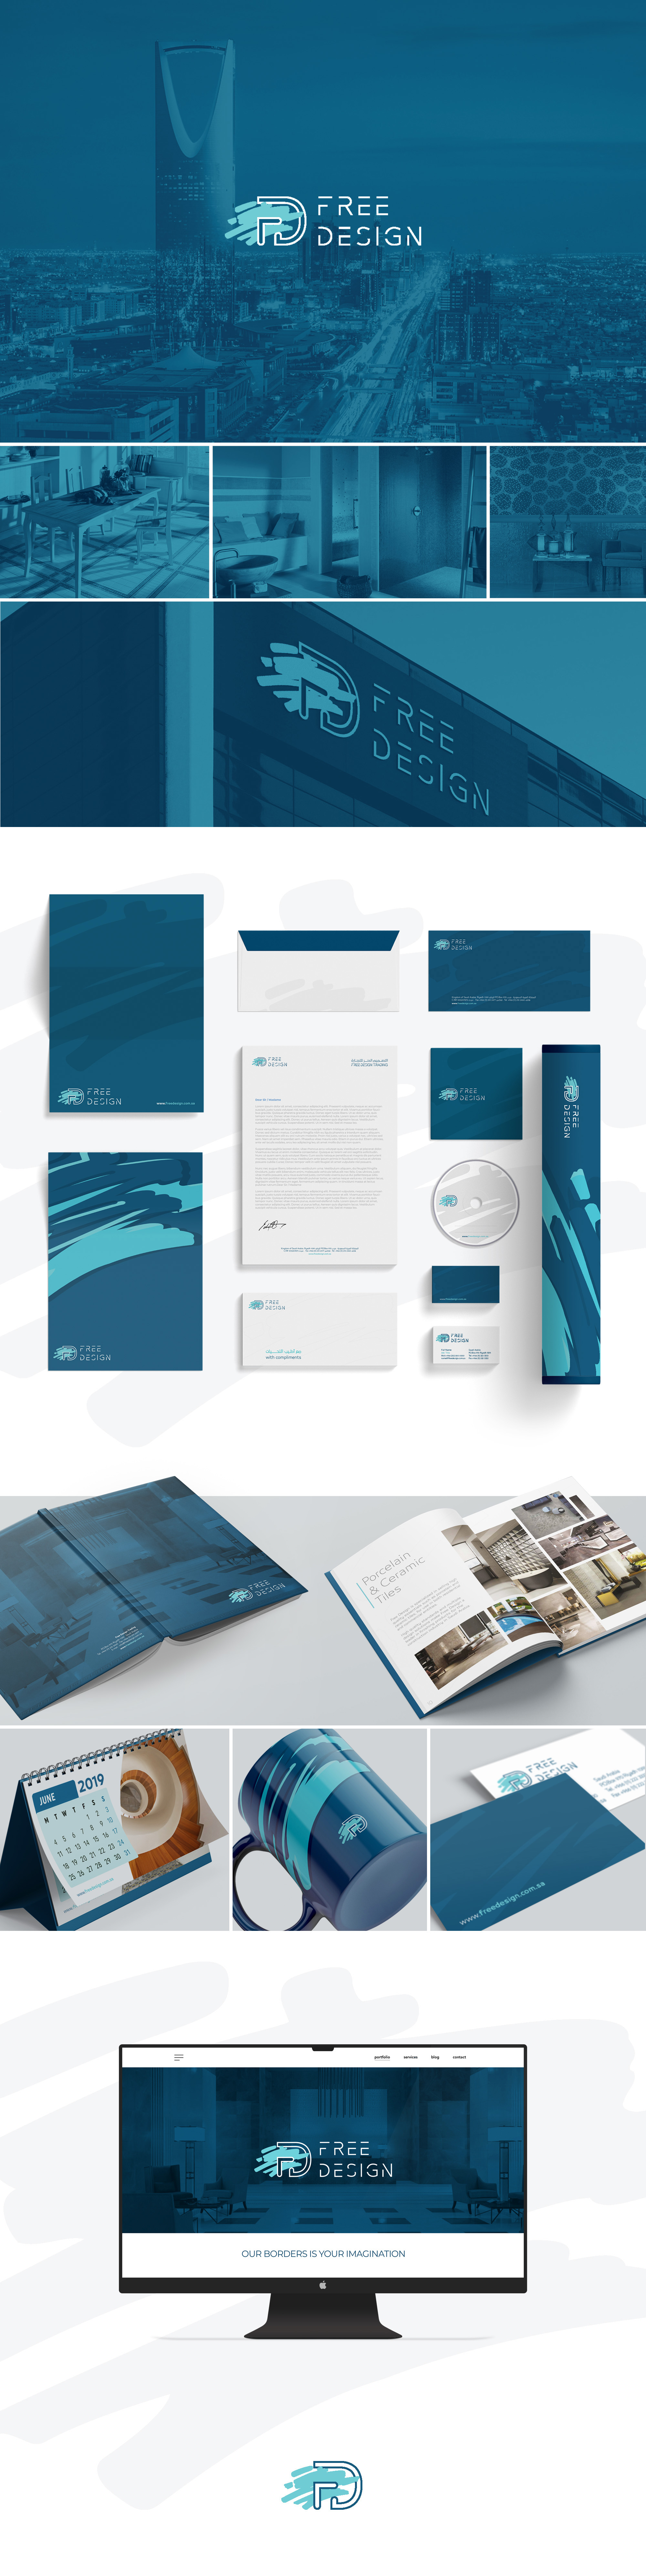 freedesign-site-layout